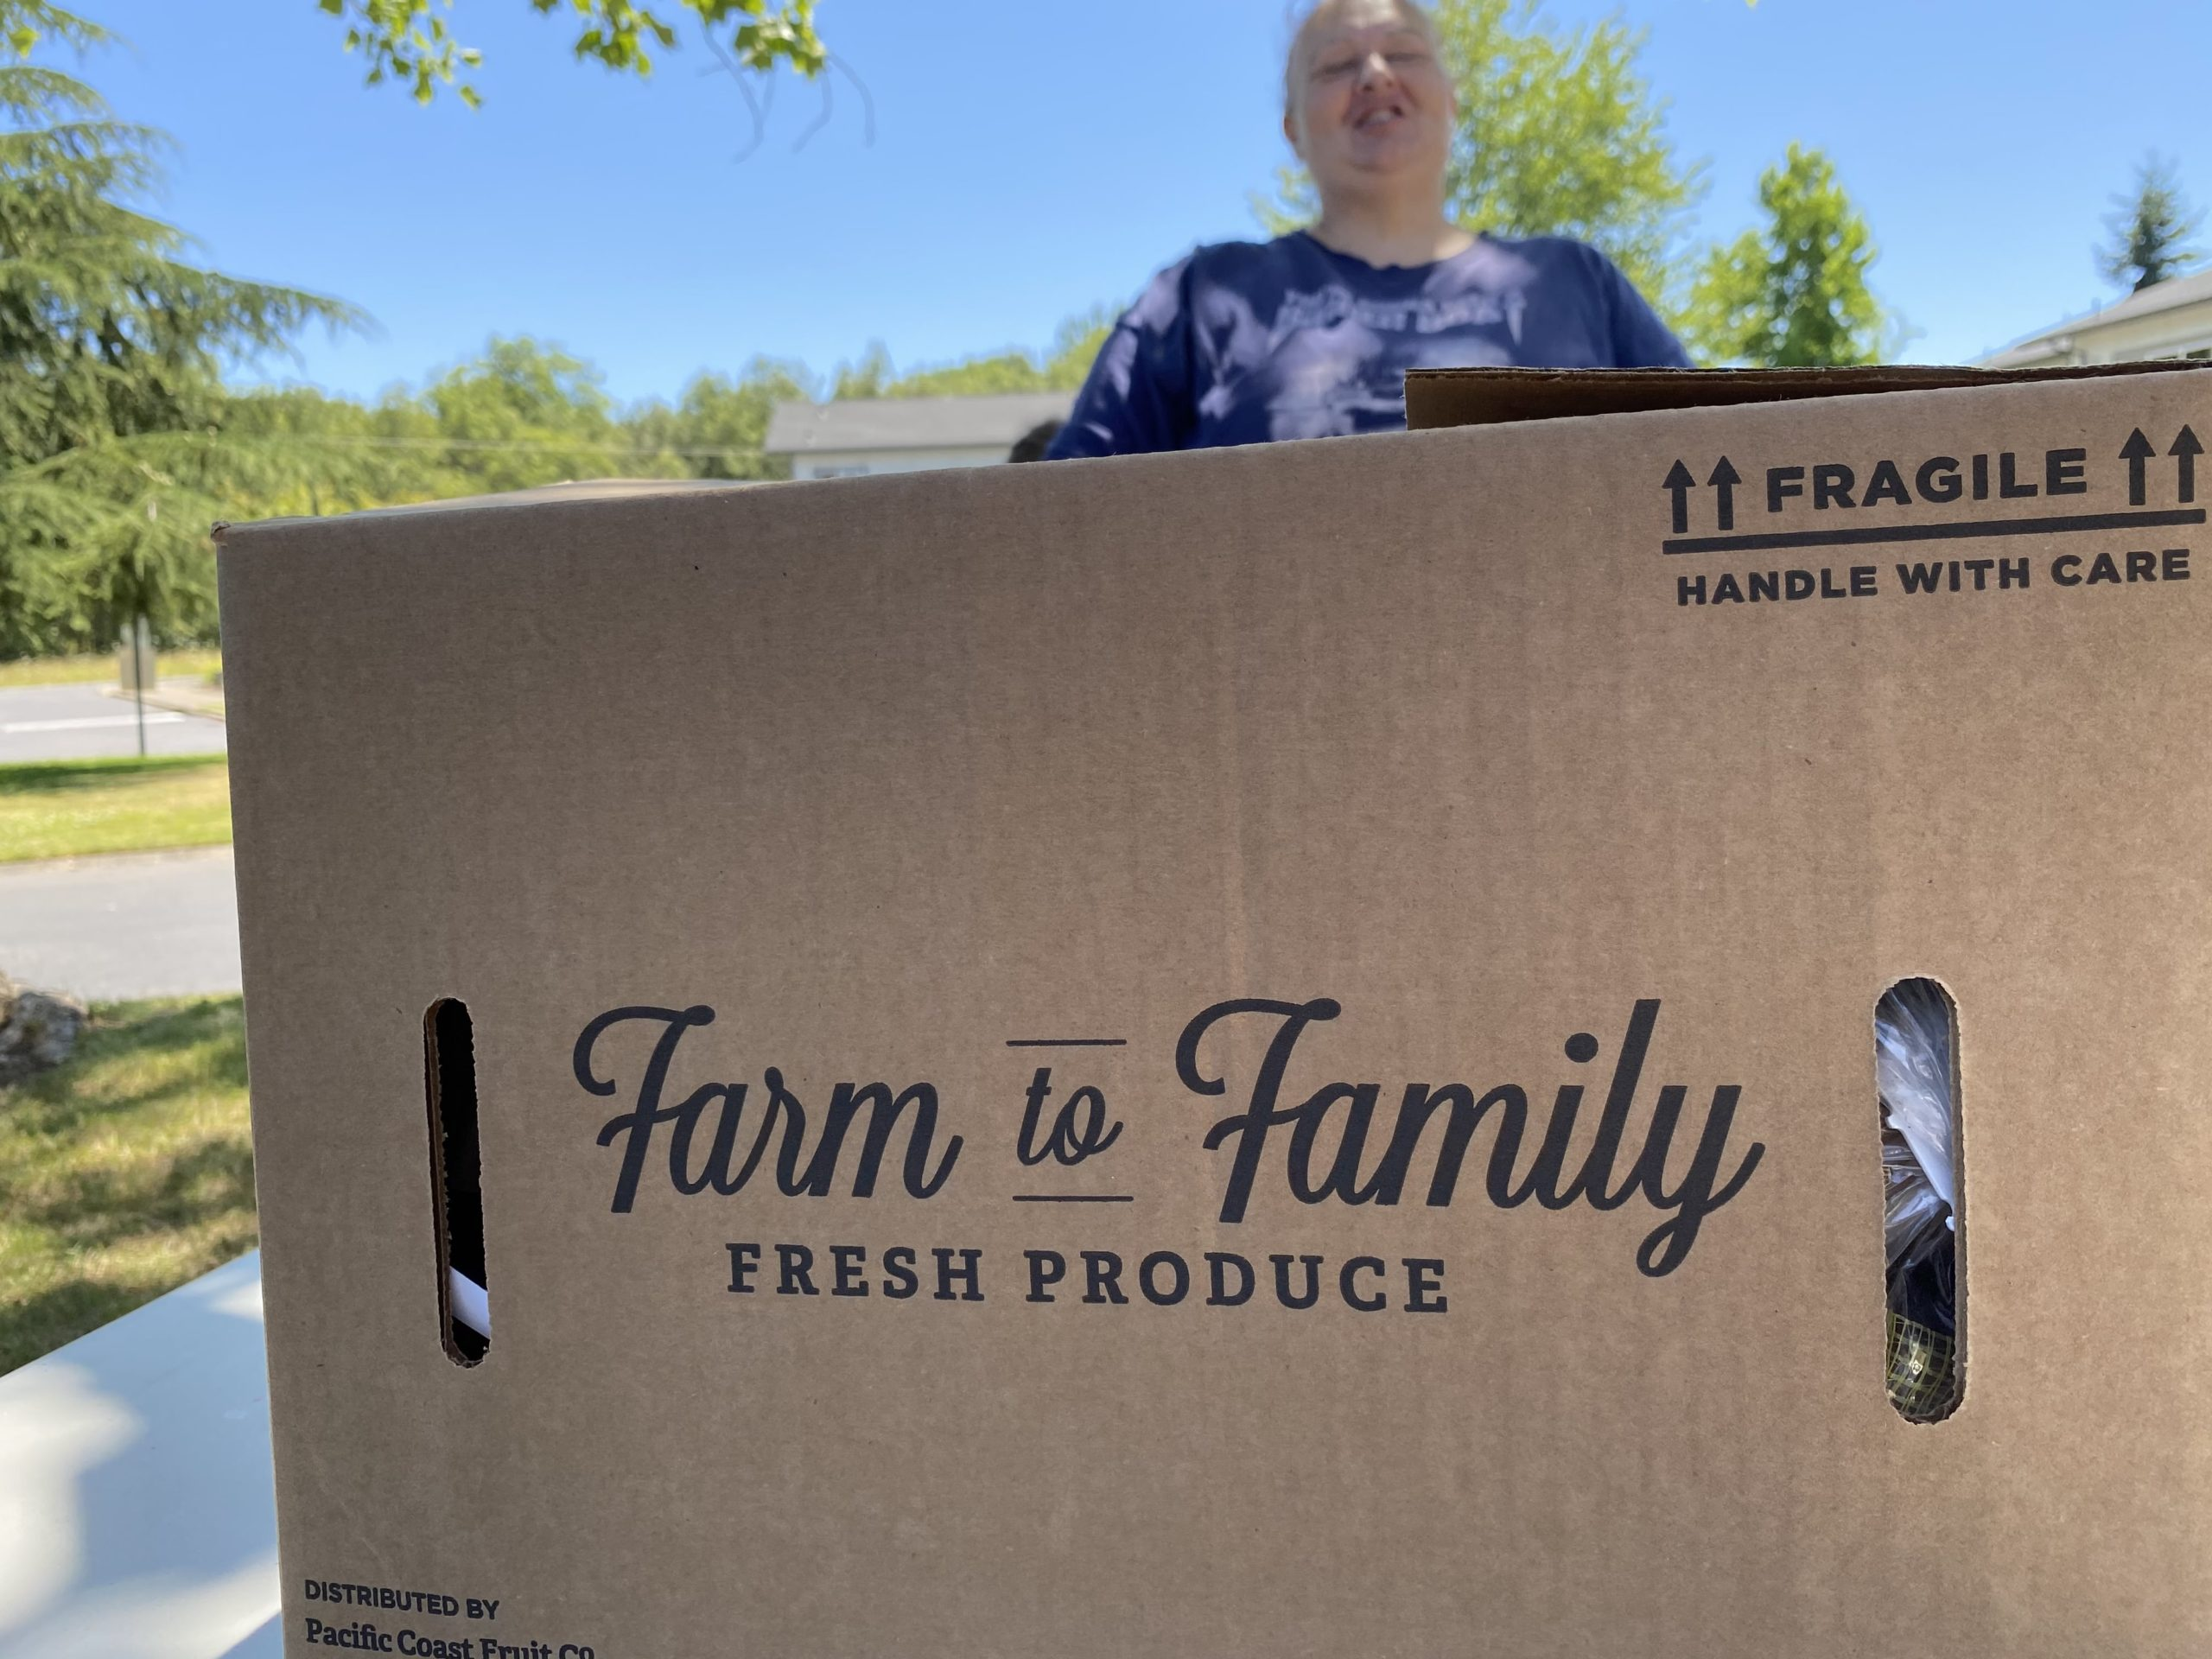 Connecting Families To Healthy Food During Covid-19